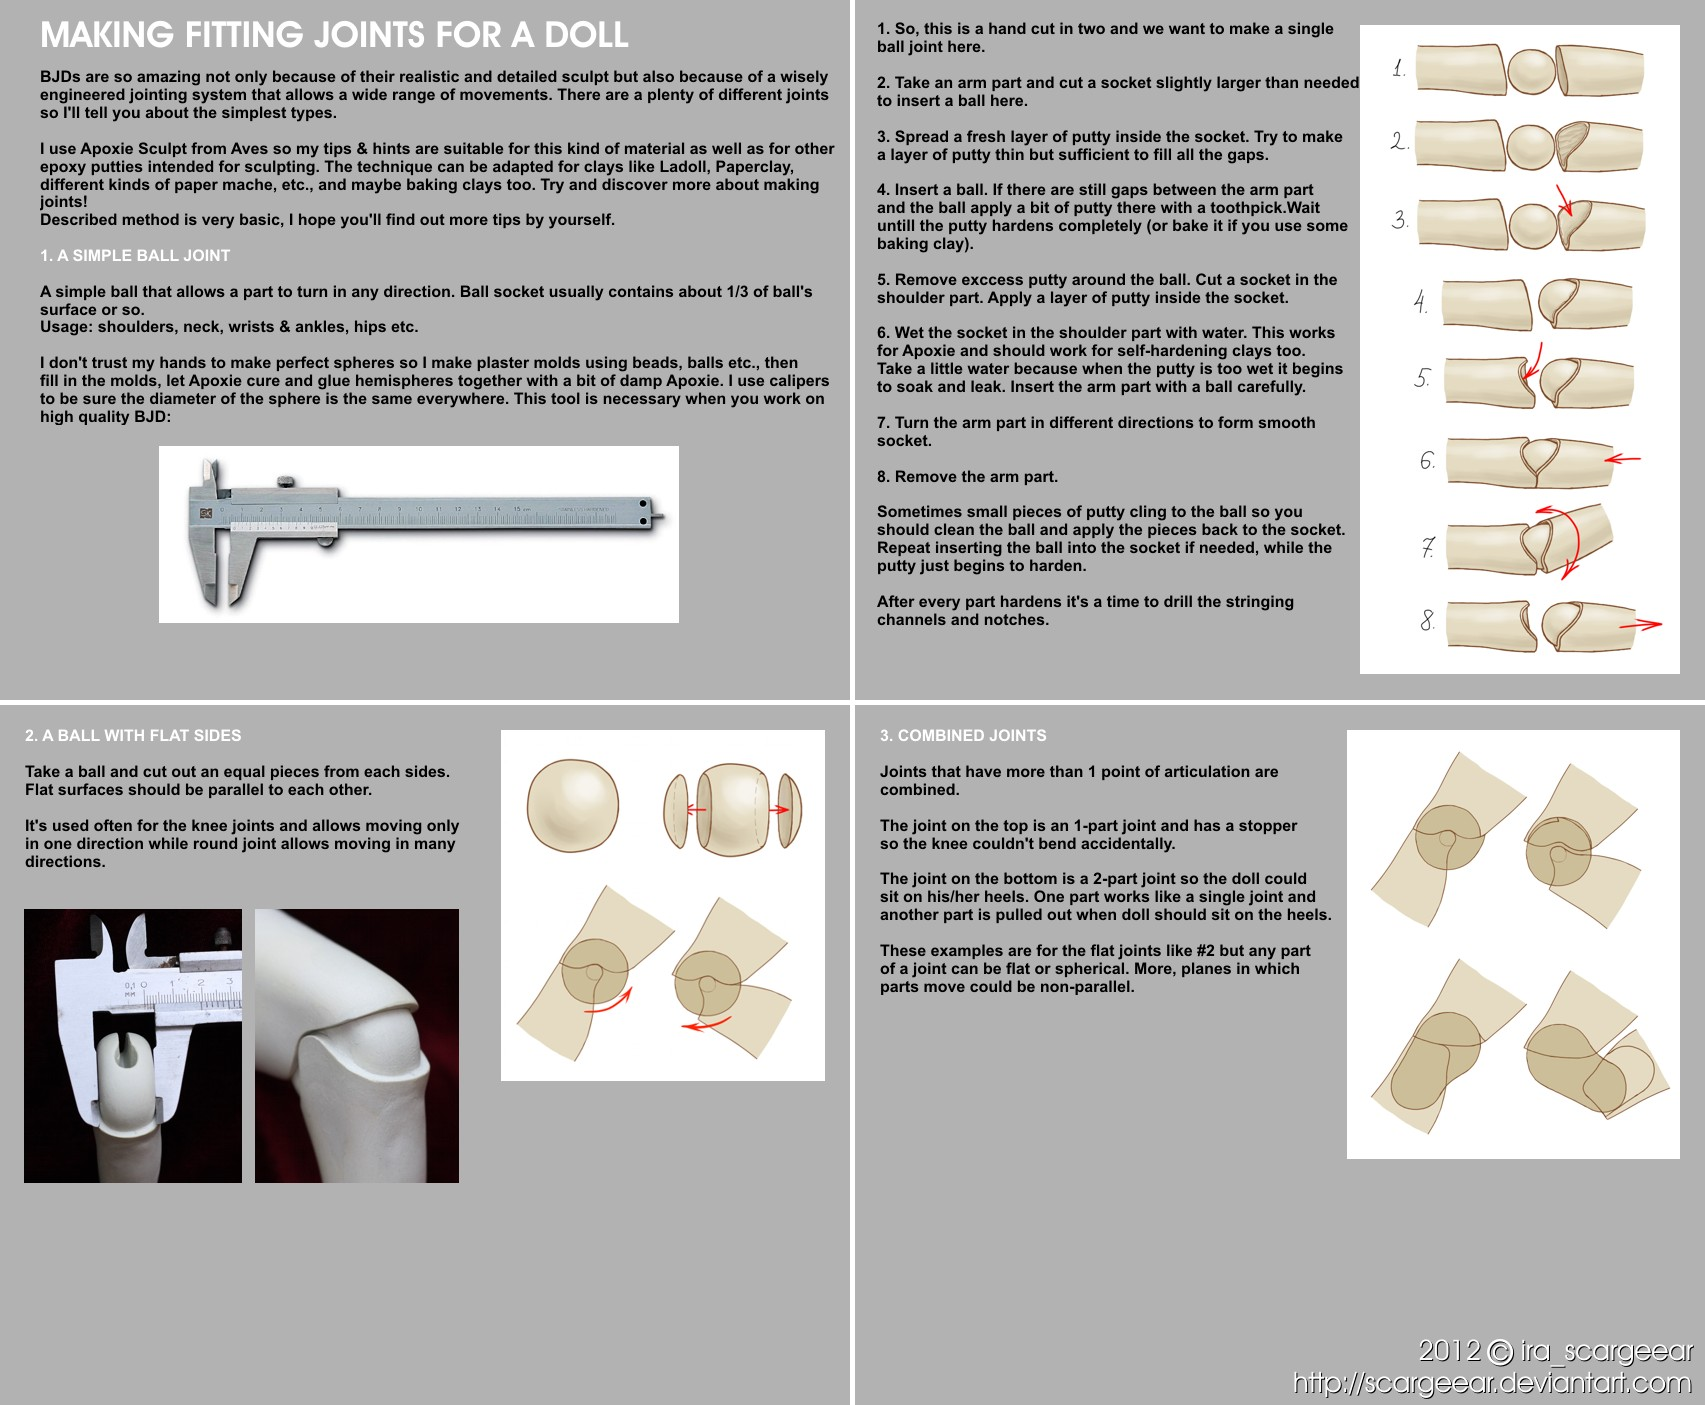 Make fitting joints for a doll - tutorial by scargeear on